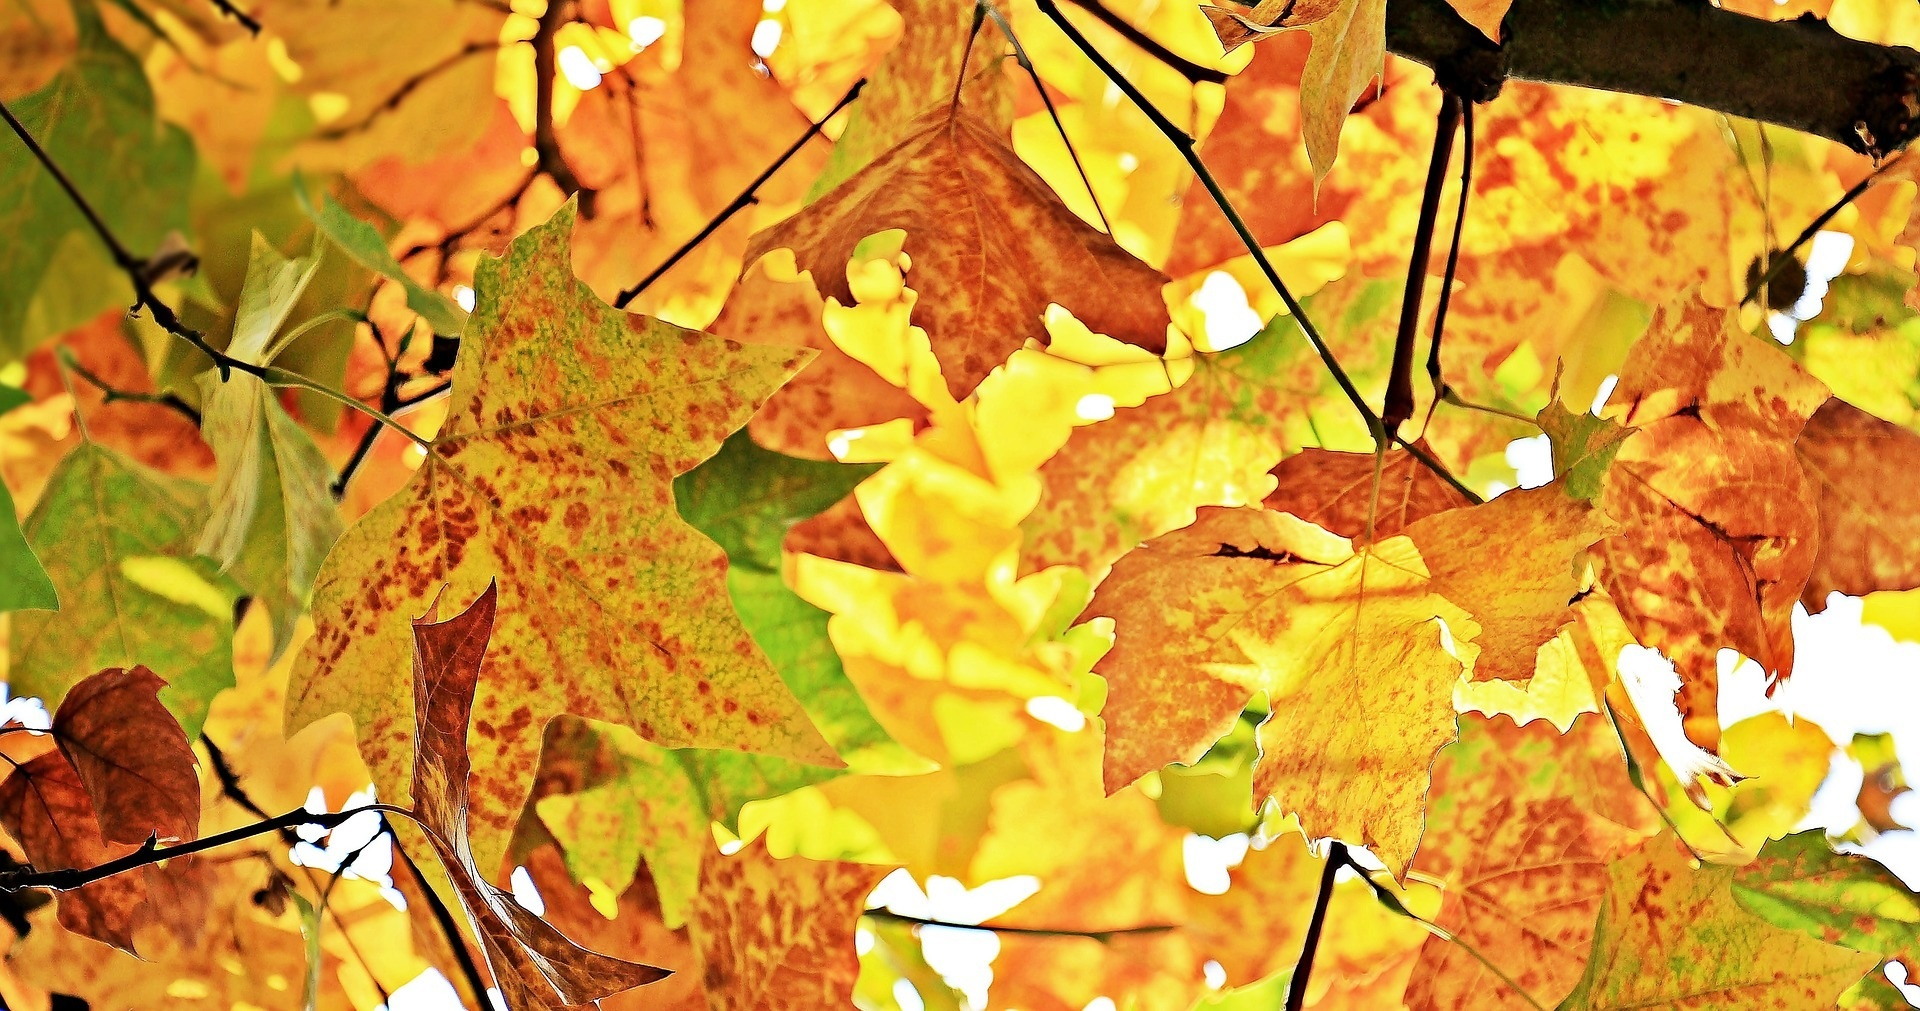 Autumn leaves (Picture from Pixabay)